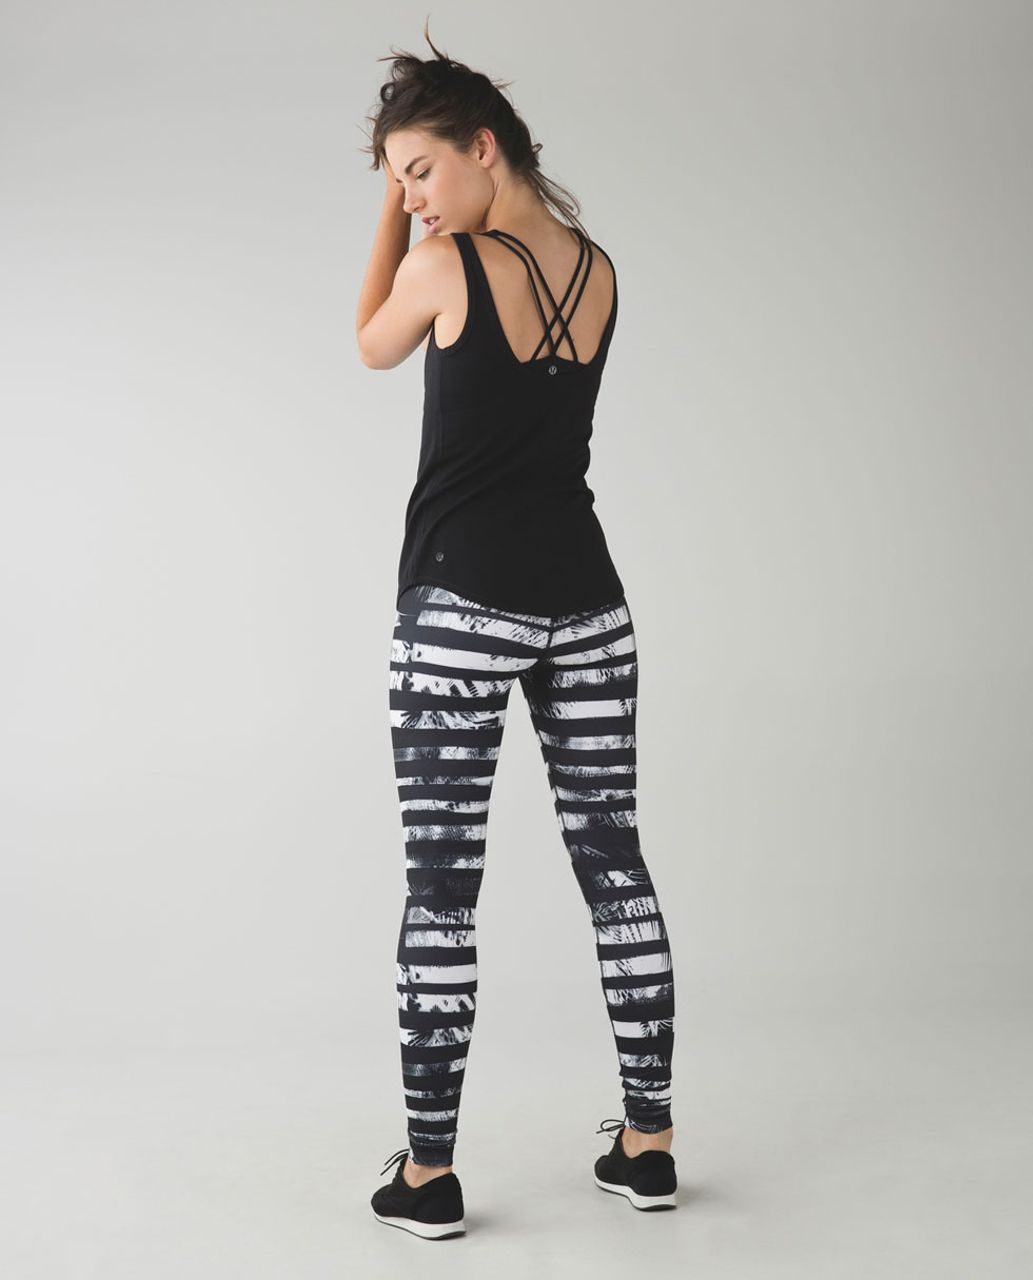 Lululemon Wunder Under Pant *Full-On Luon (Roll Down) - Shady Palms Black White